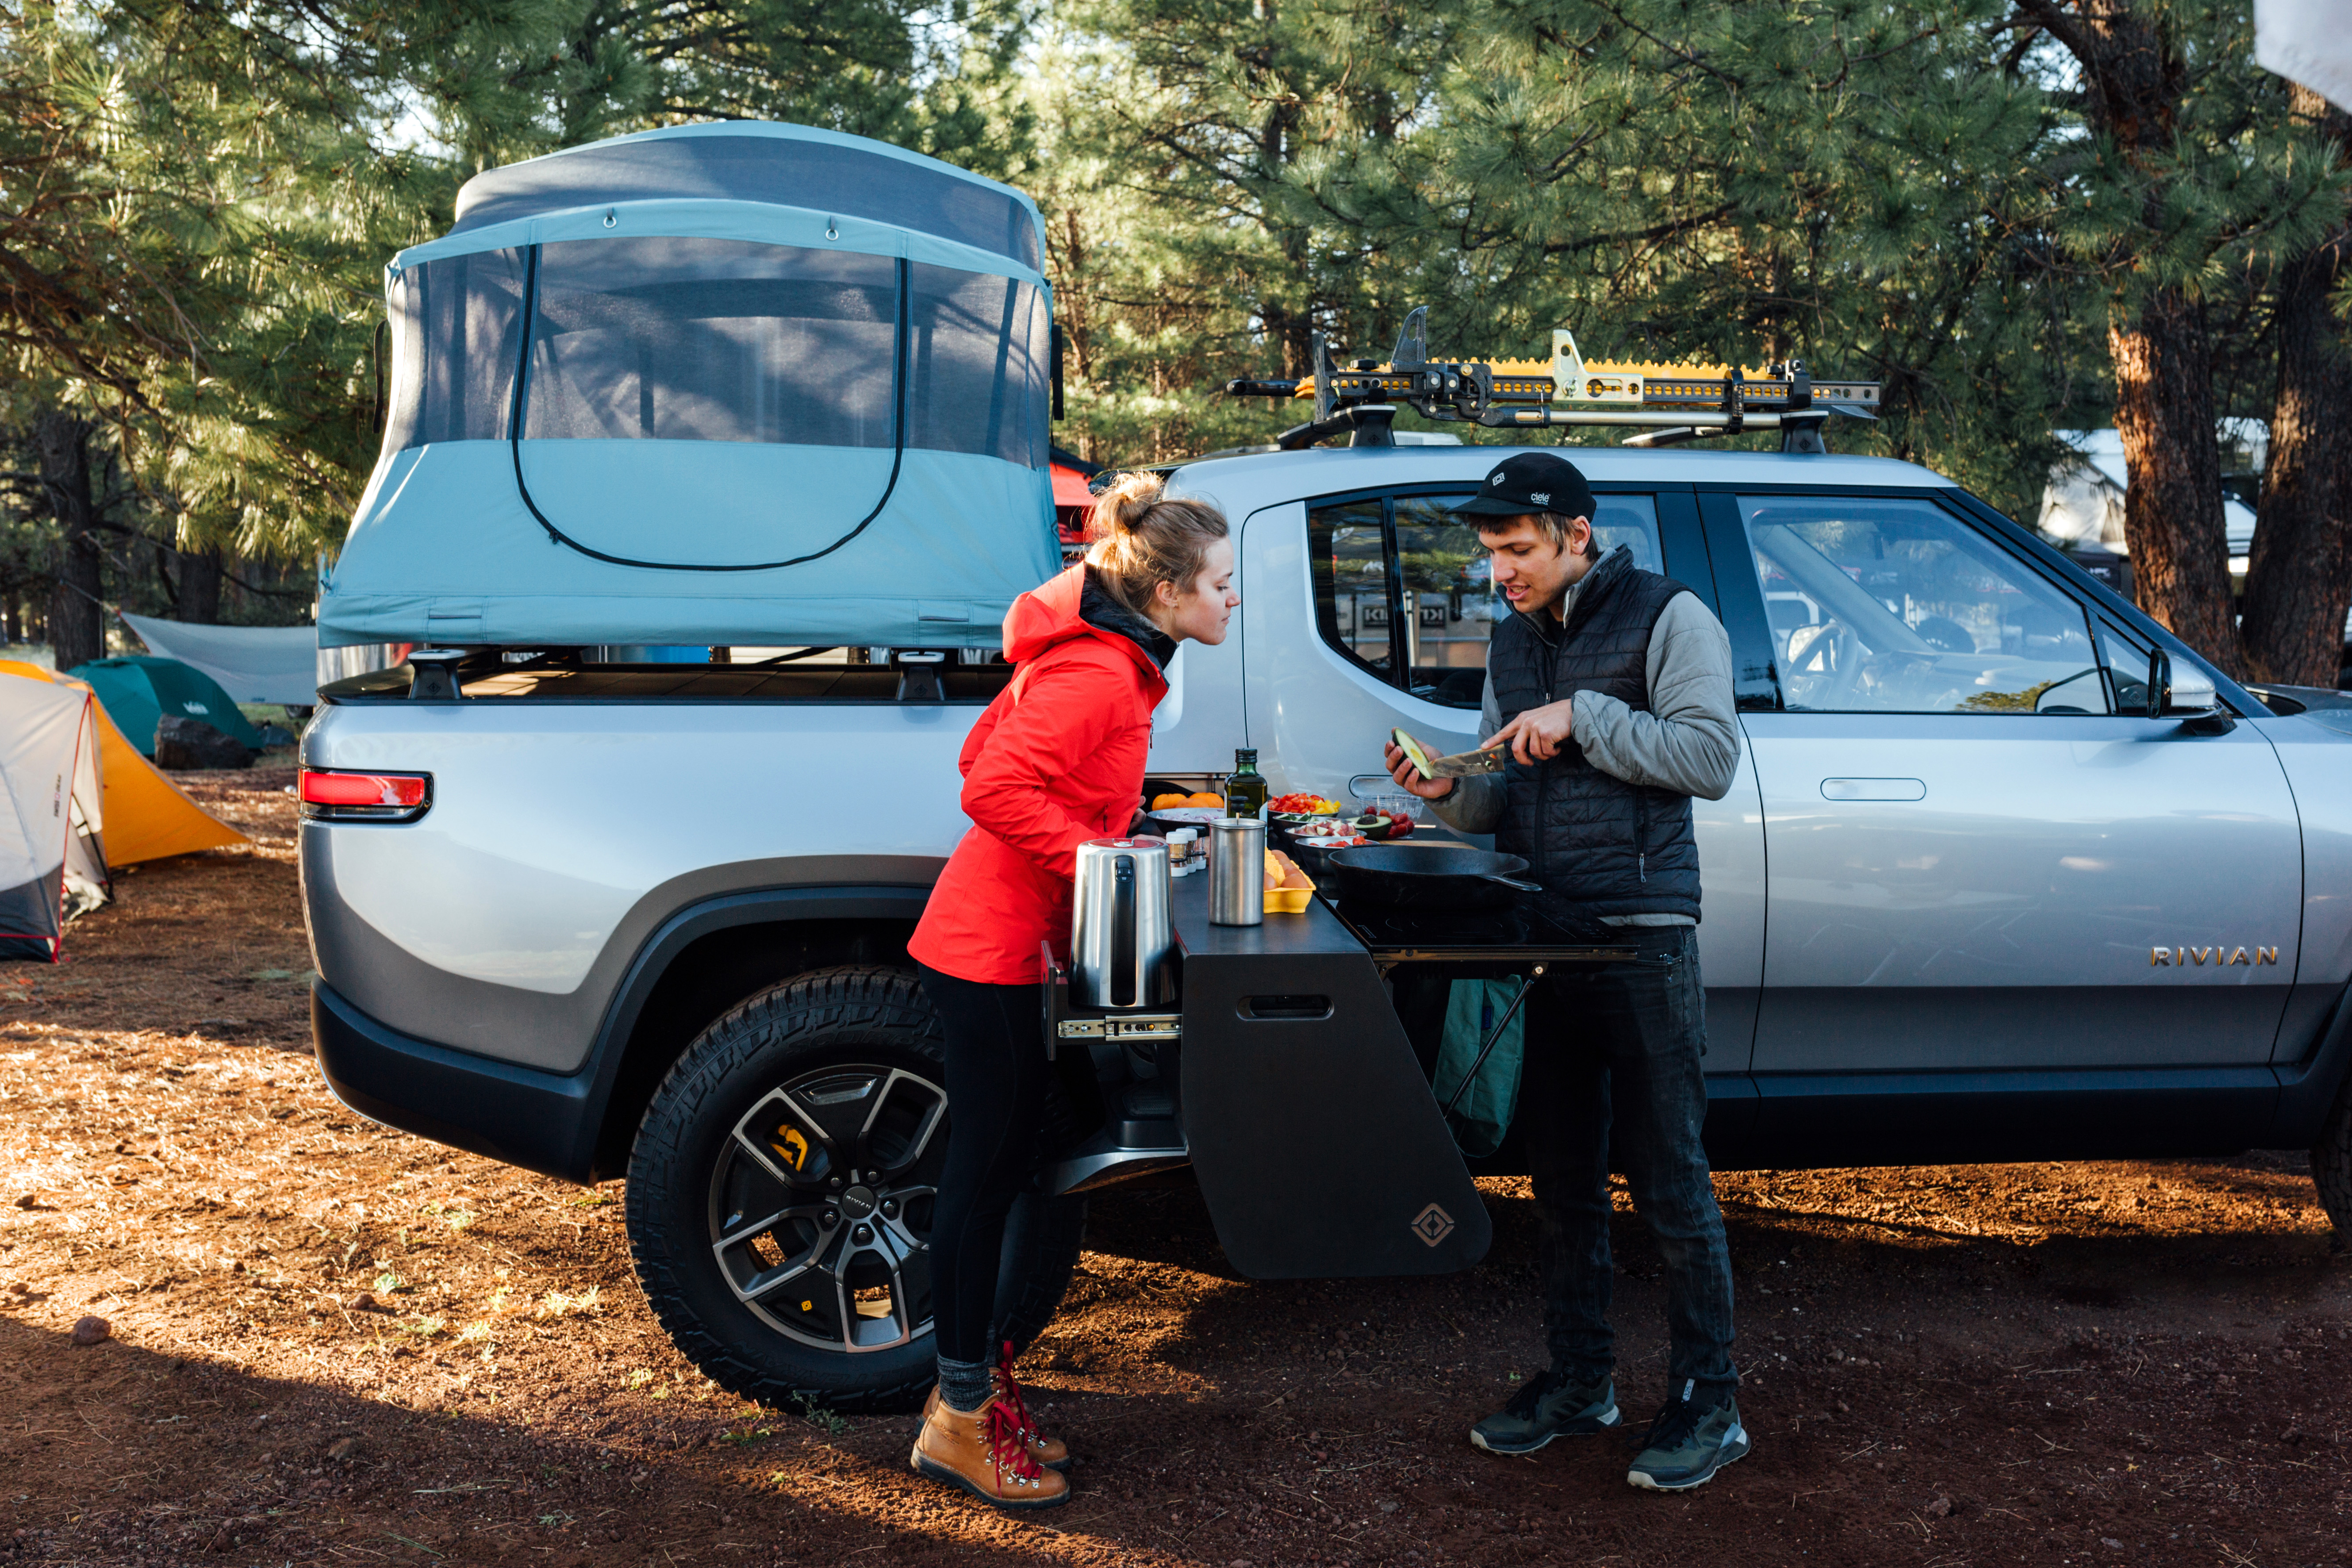 Electric camping truck comes with slide-out kitchen